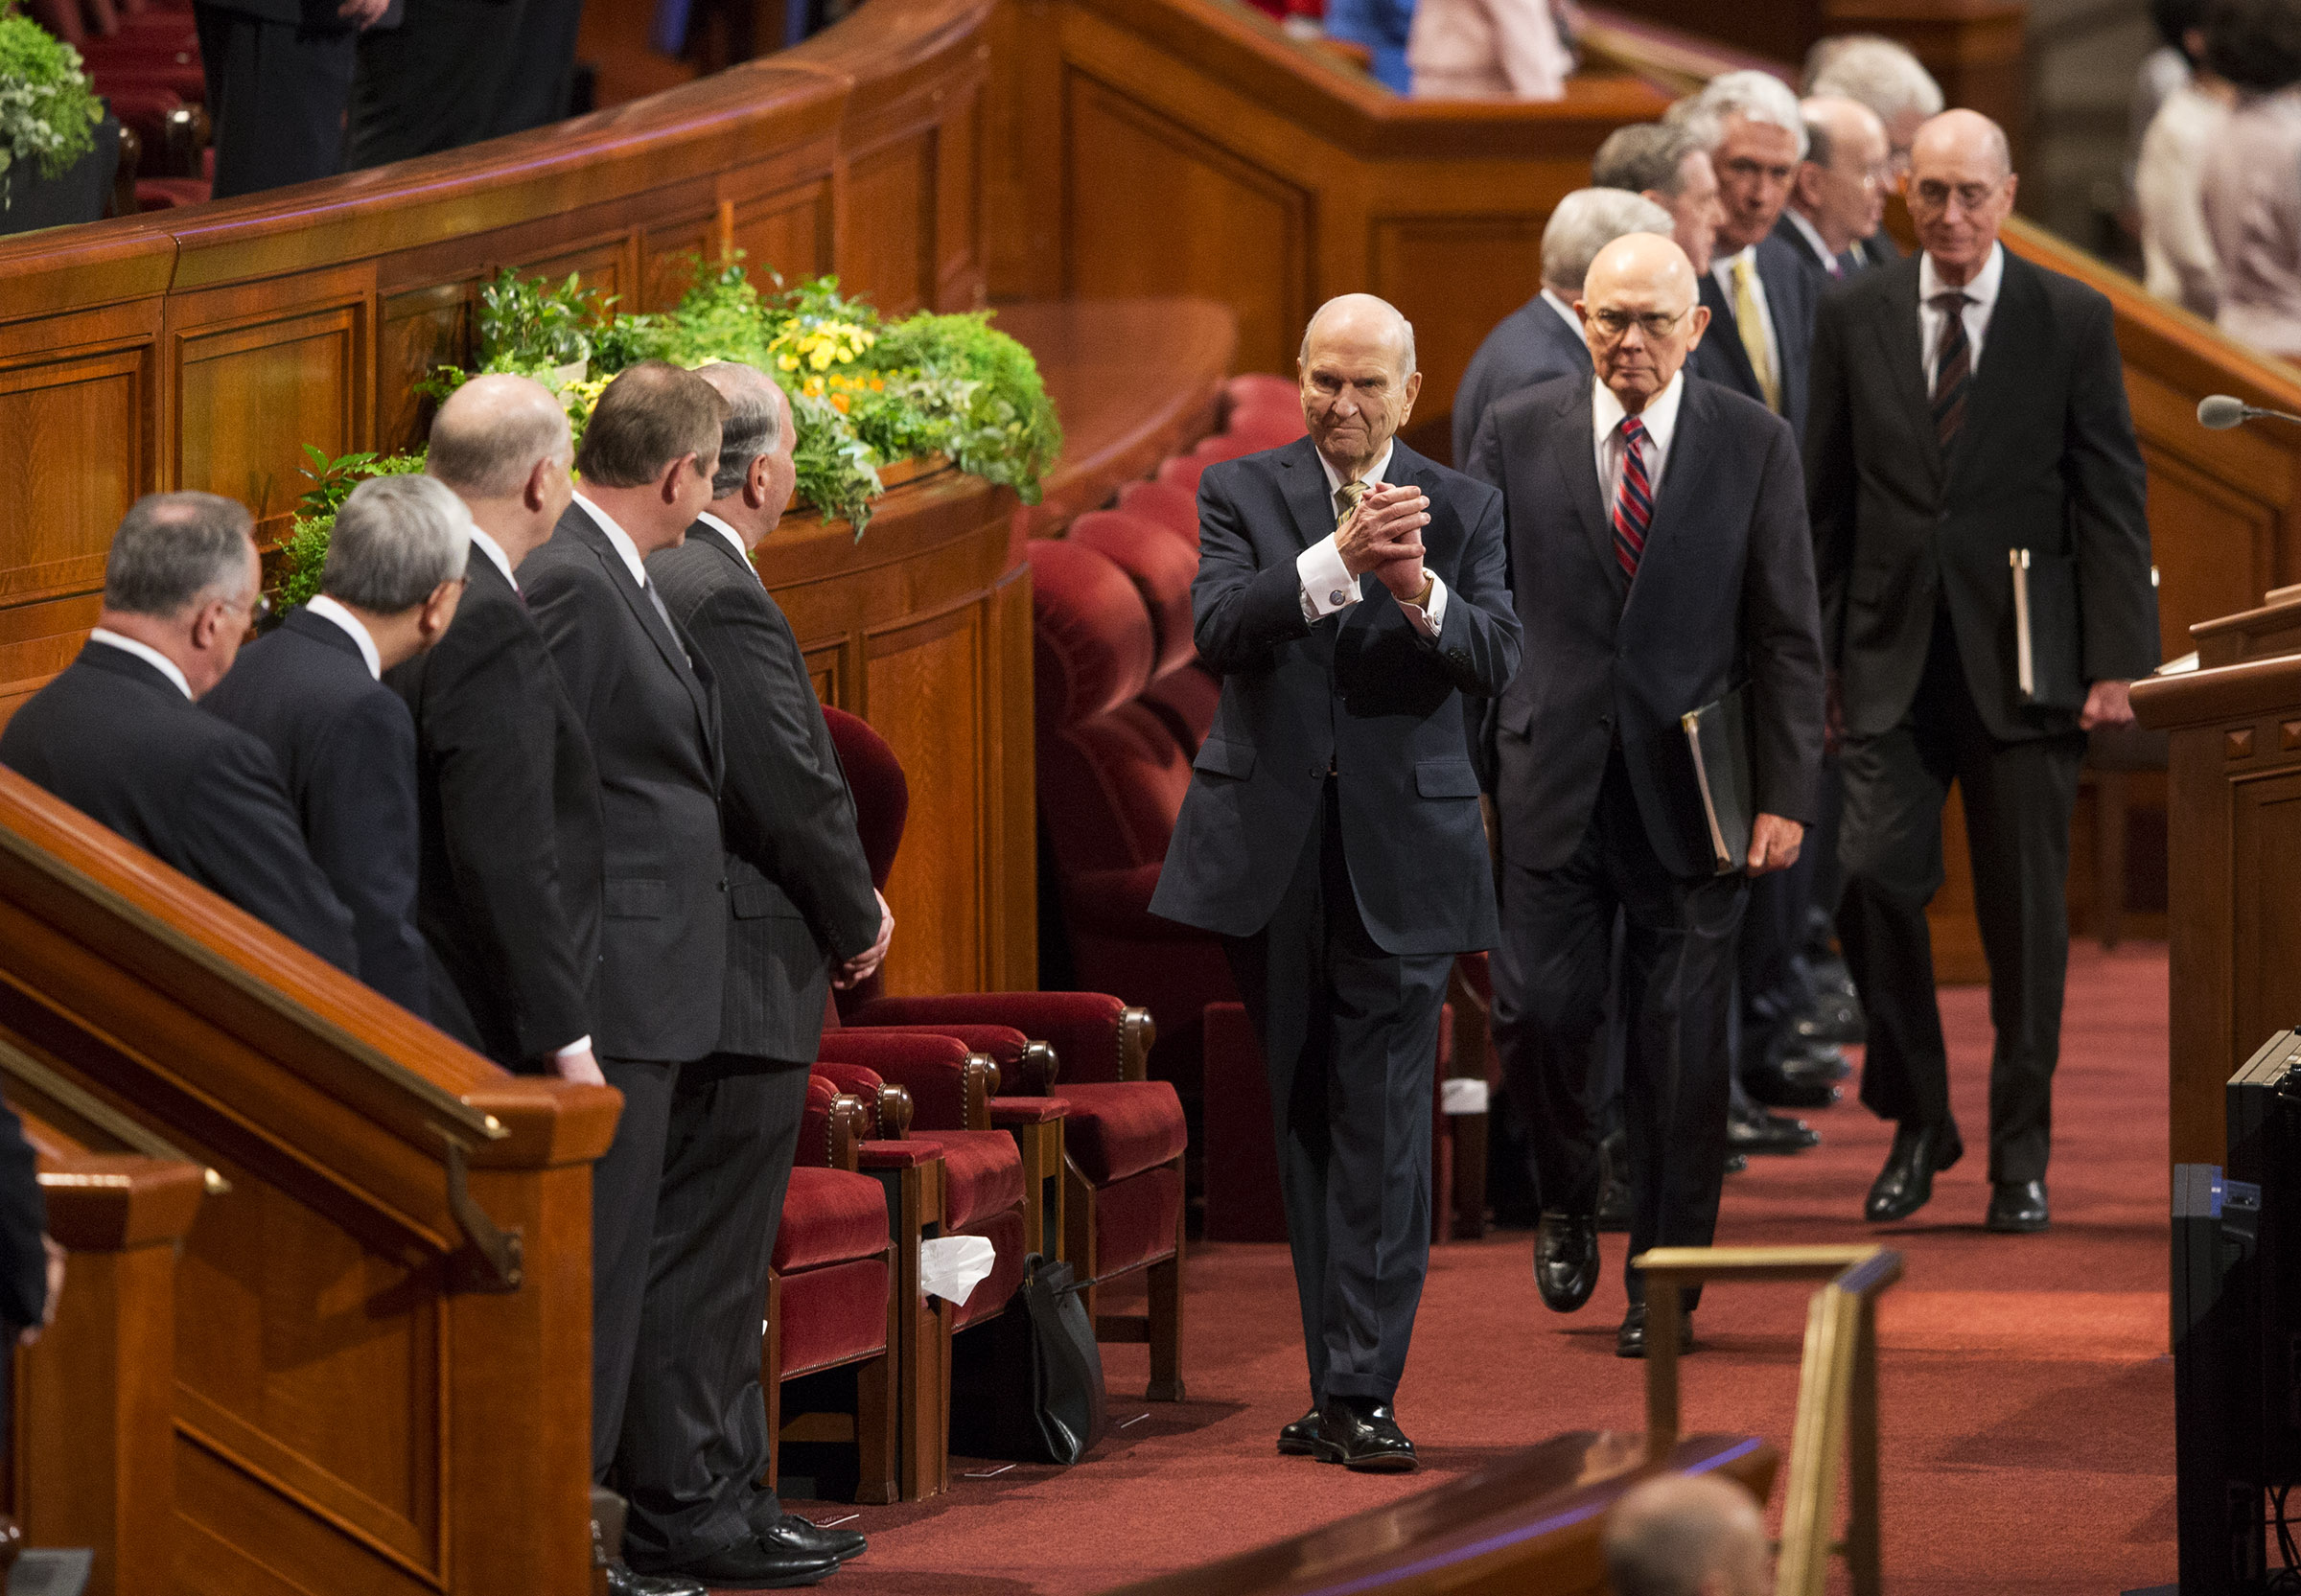 LDS Church President Russell M. Nelson and his counselors, President Dallin H. Oaks, first counselor in the First Presidency and President Henry B. Eyring, second counselor in the First Presidency, walk onto the stand prior to the Sunday afternoon session of the 188th Annual General Conference of The Church of Jesus Christ of Latter-day Saints, in the Conference Center in Salt Lake City on Sunday, April 1, 2018.